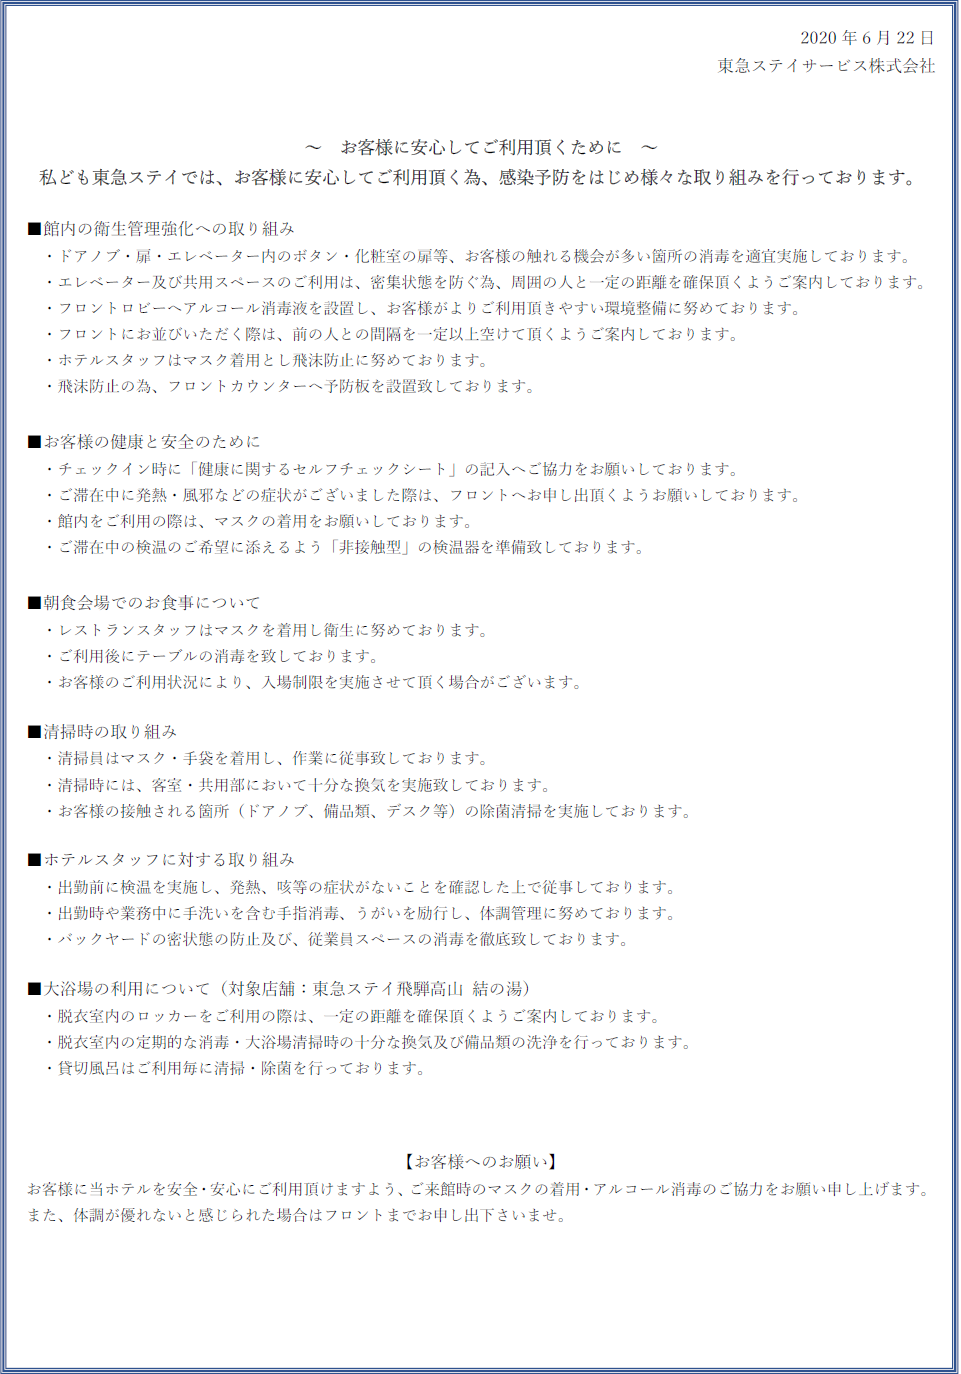 https://www.tokyustayresidence.com/topics/images/Japanese%200622.png